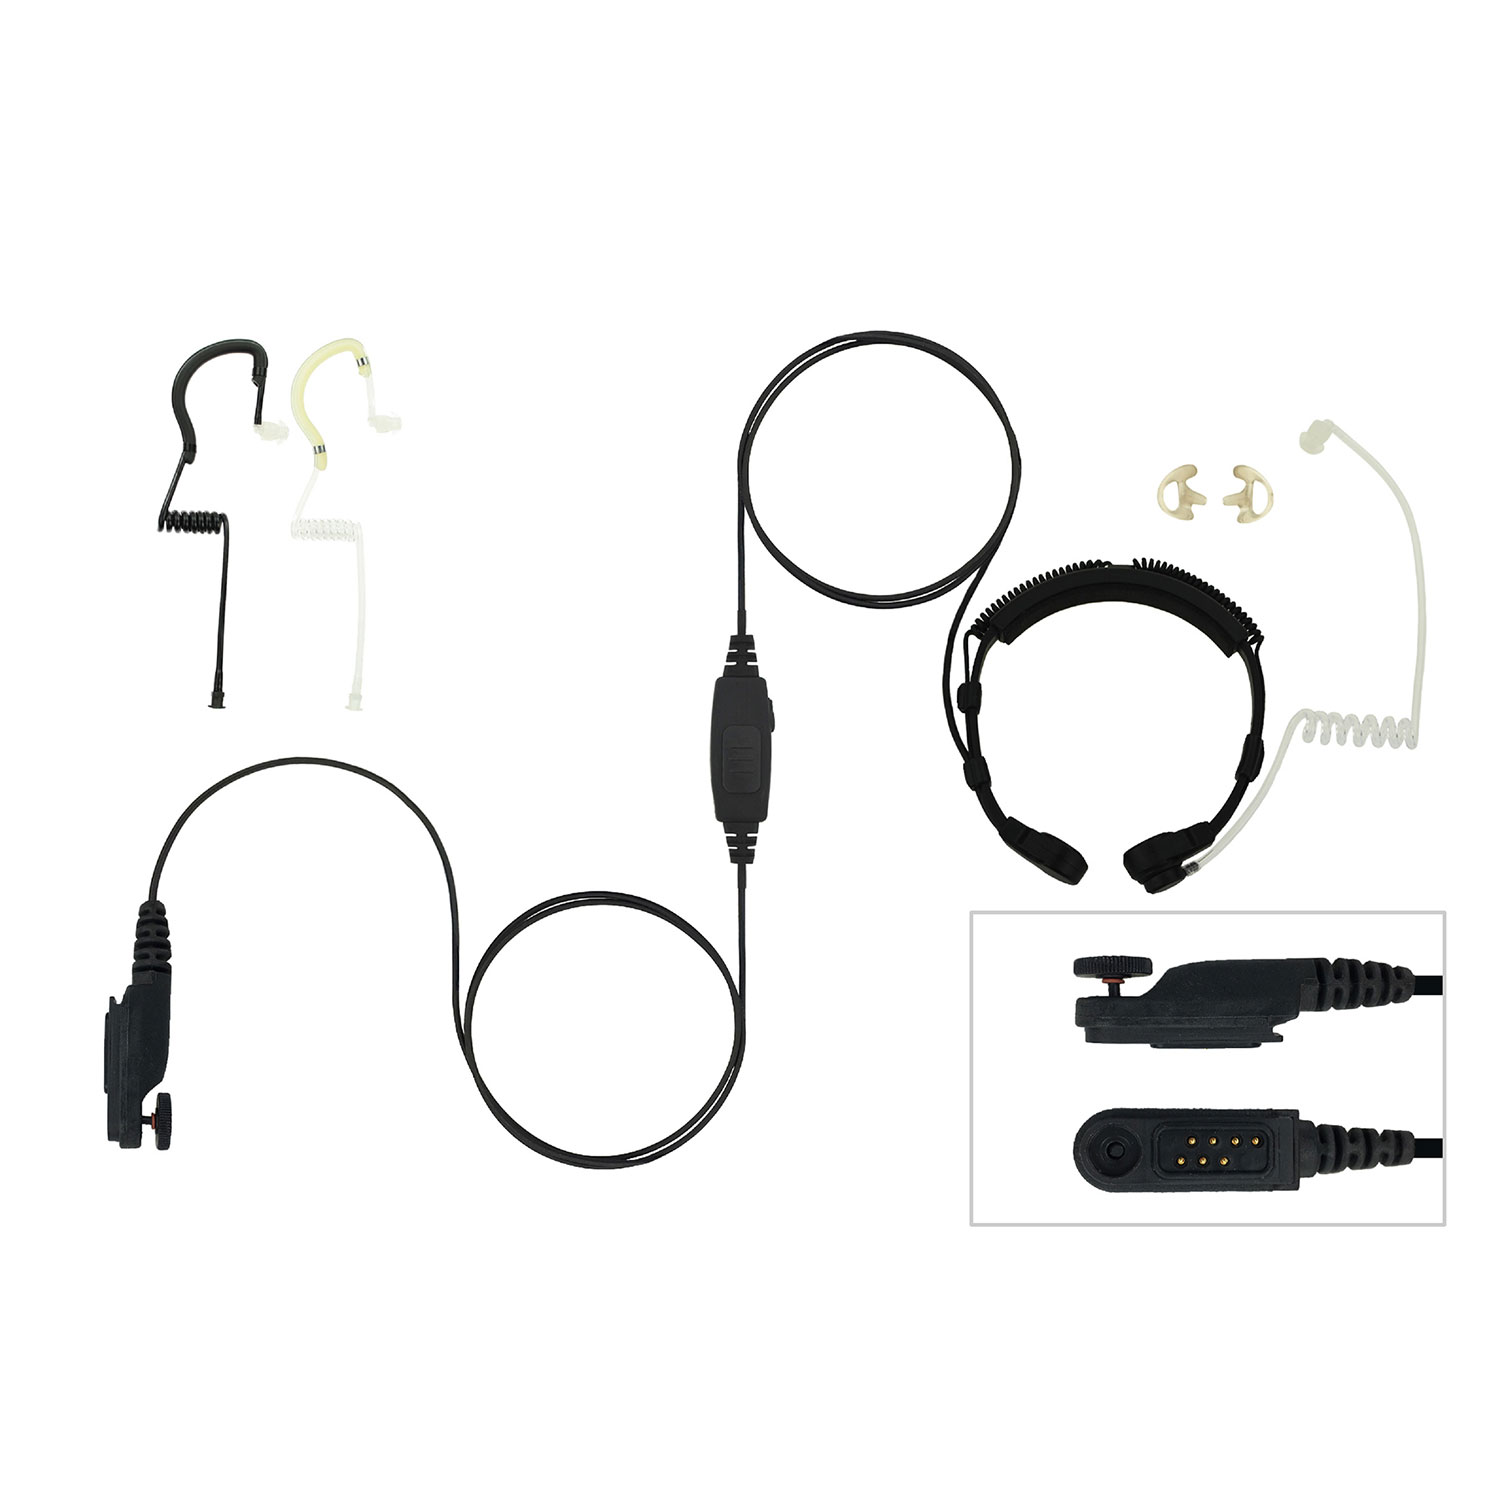 EarHugger Throat Microphone for Harris XG-100P, XL-200P